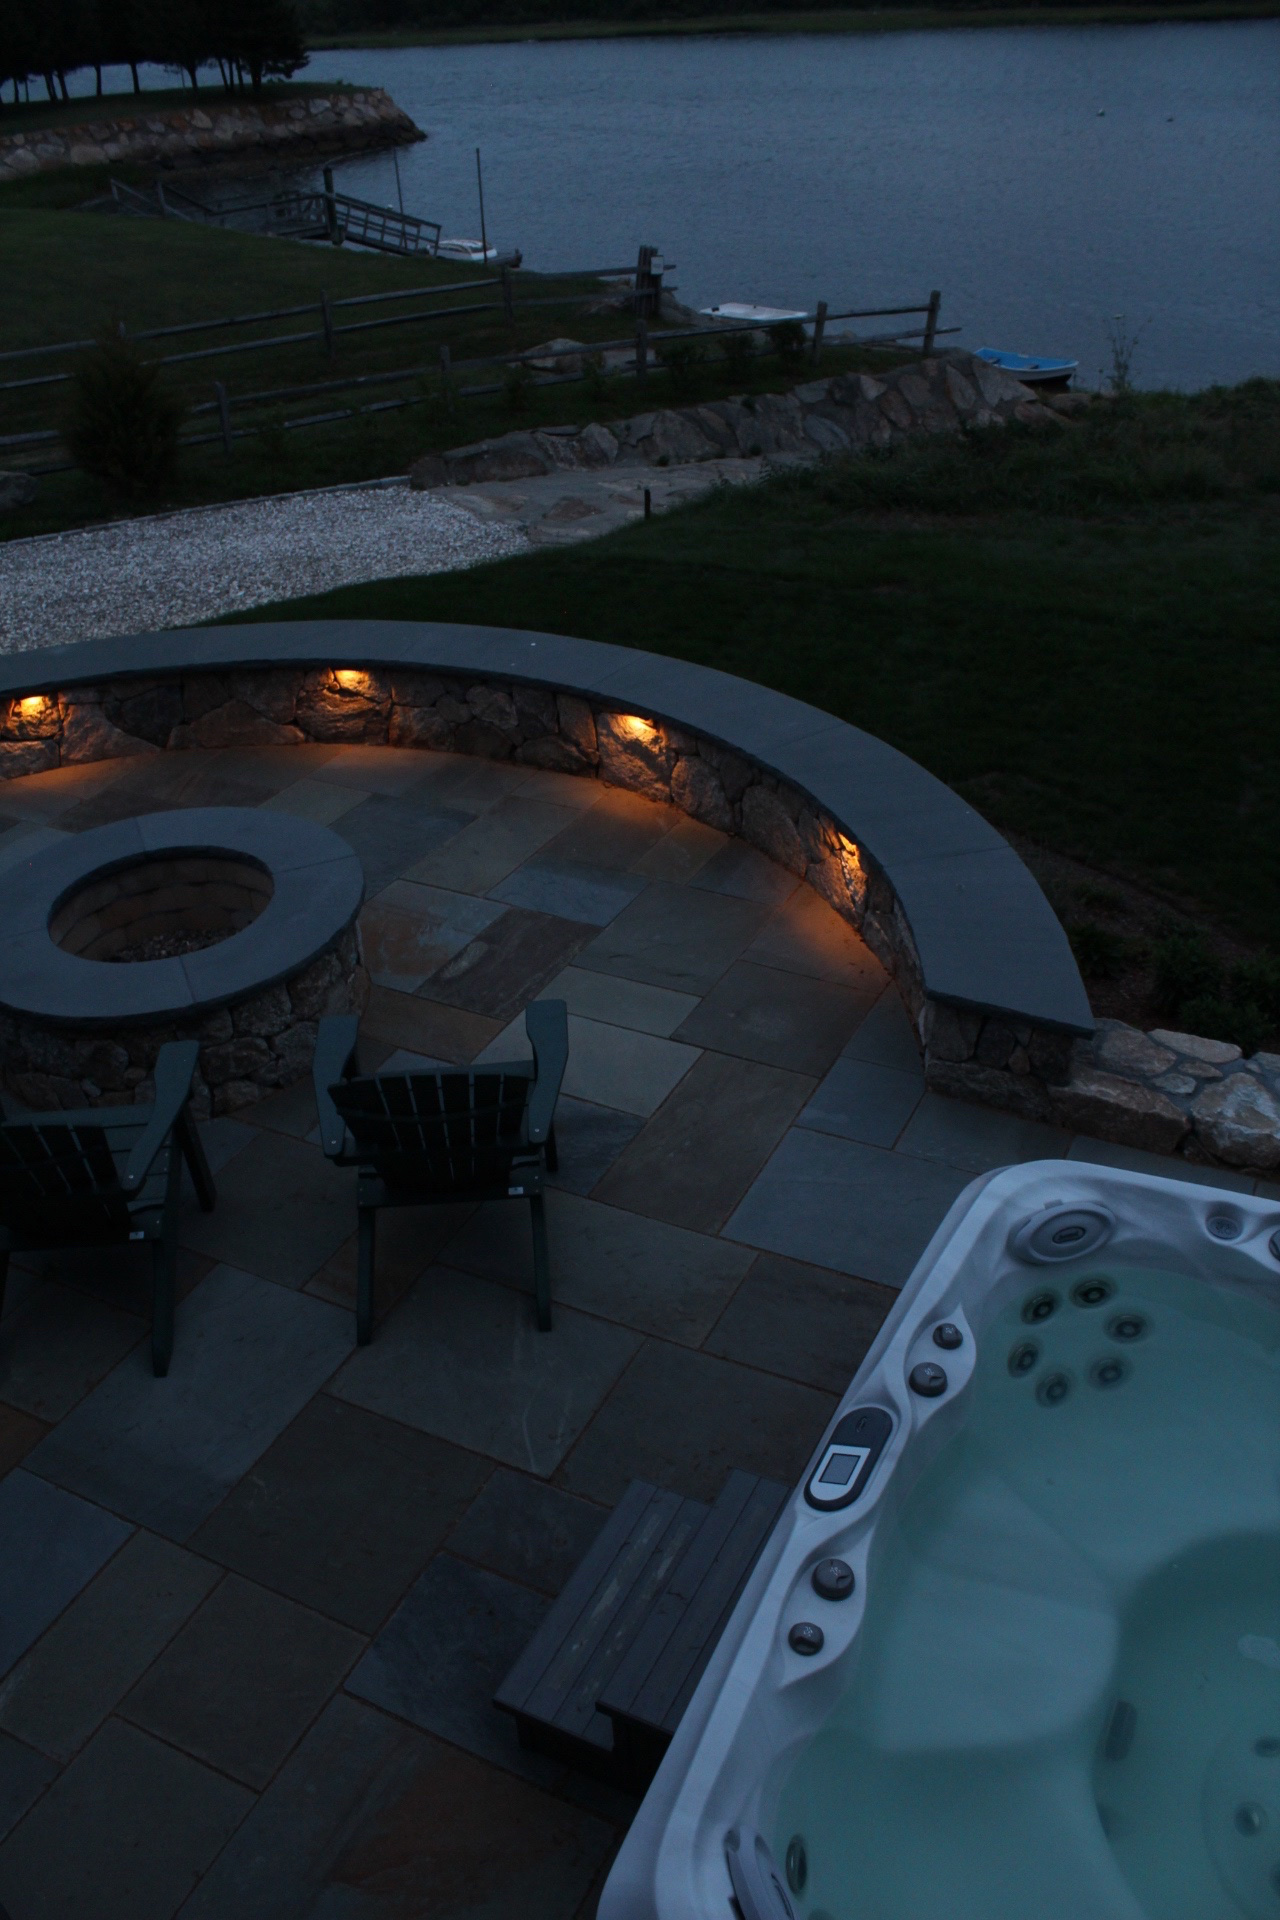 High Angle Shot of Eastham Home's Patio, Hot Tub and Boat Ramp